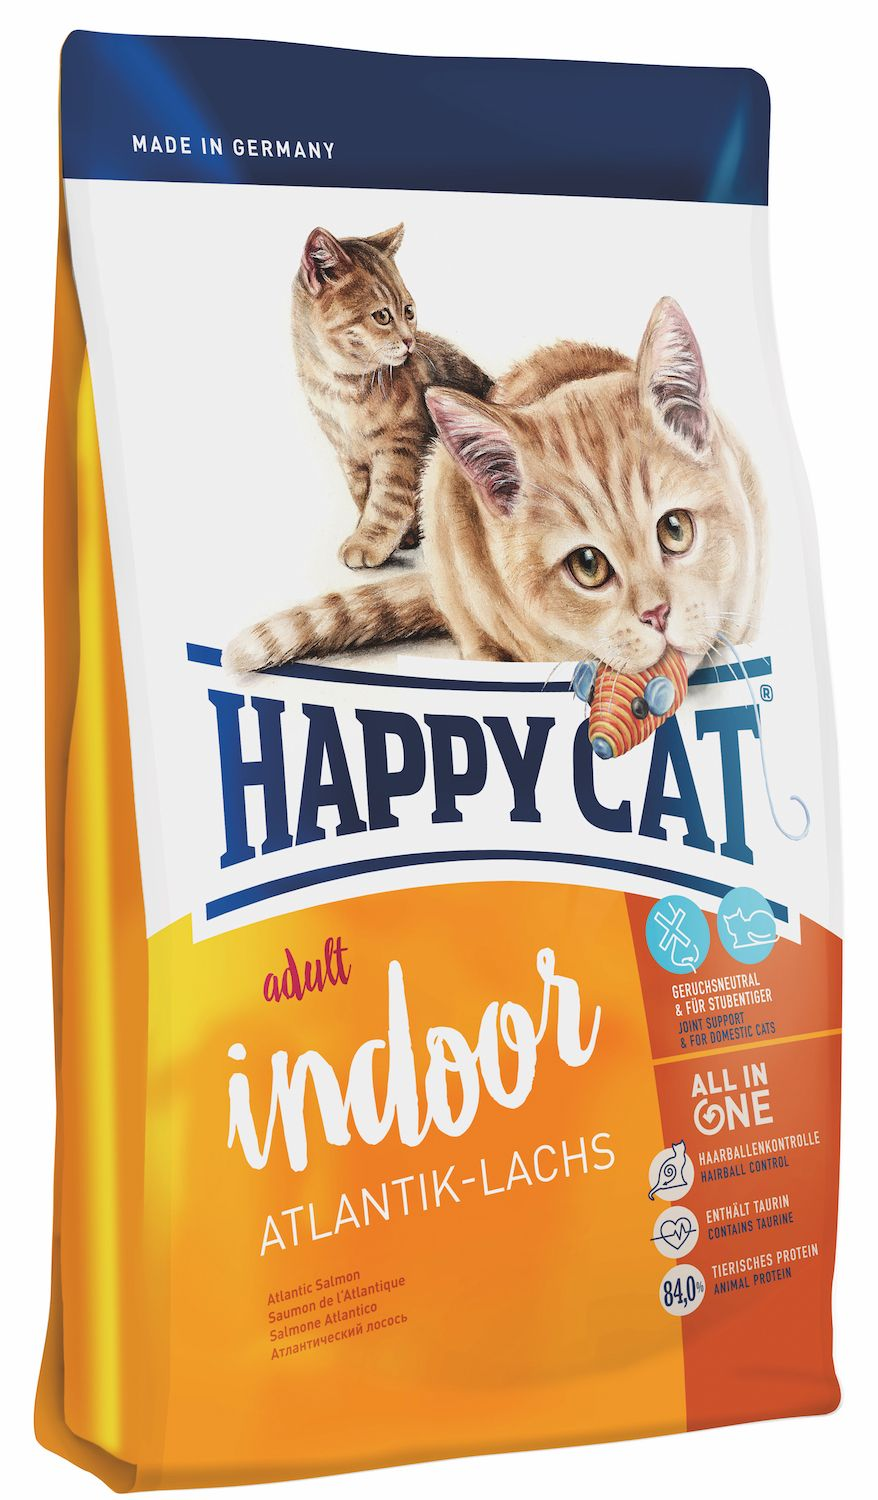 Сухой корм Happy Cat Adult Indoor Atlantik-Lachs с атлантическим лососем для кошек